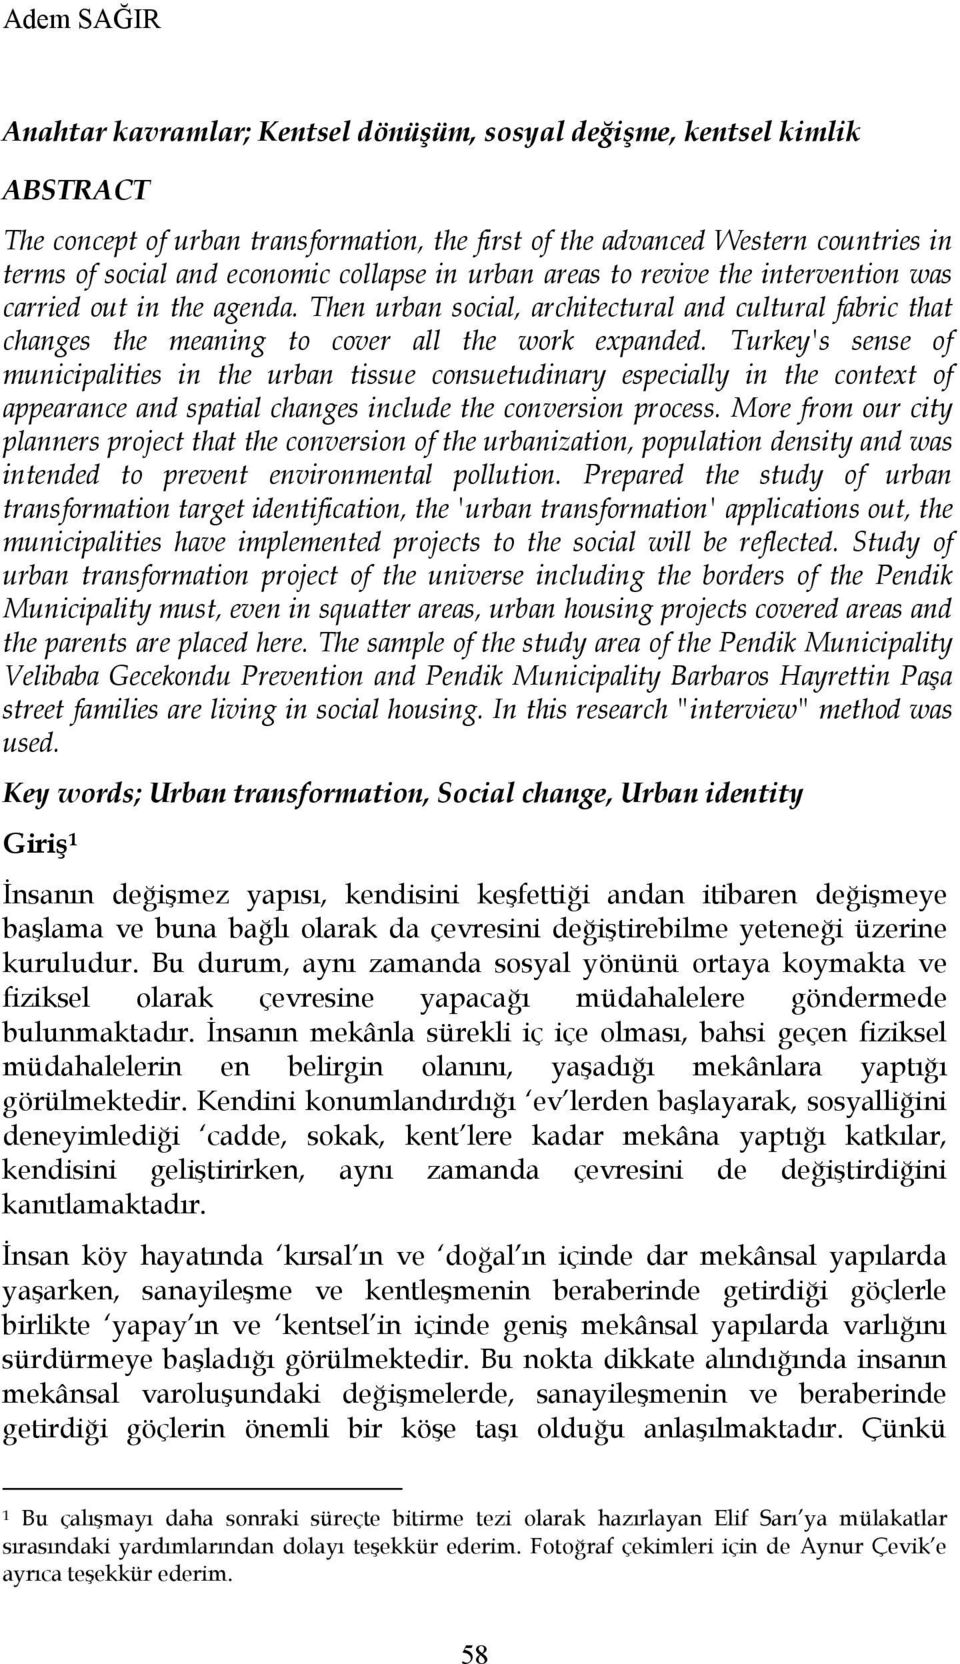 Turkey's sense of municipalities in the urban tissue consuetudinary especially in the context of appearance and spatial changes include the conversion process.